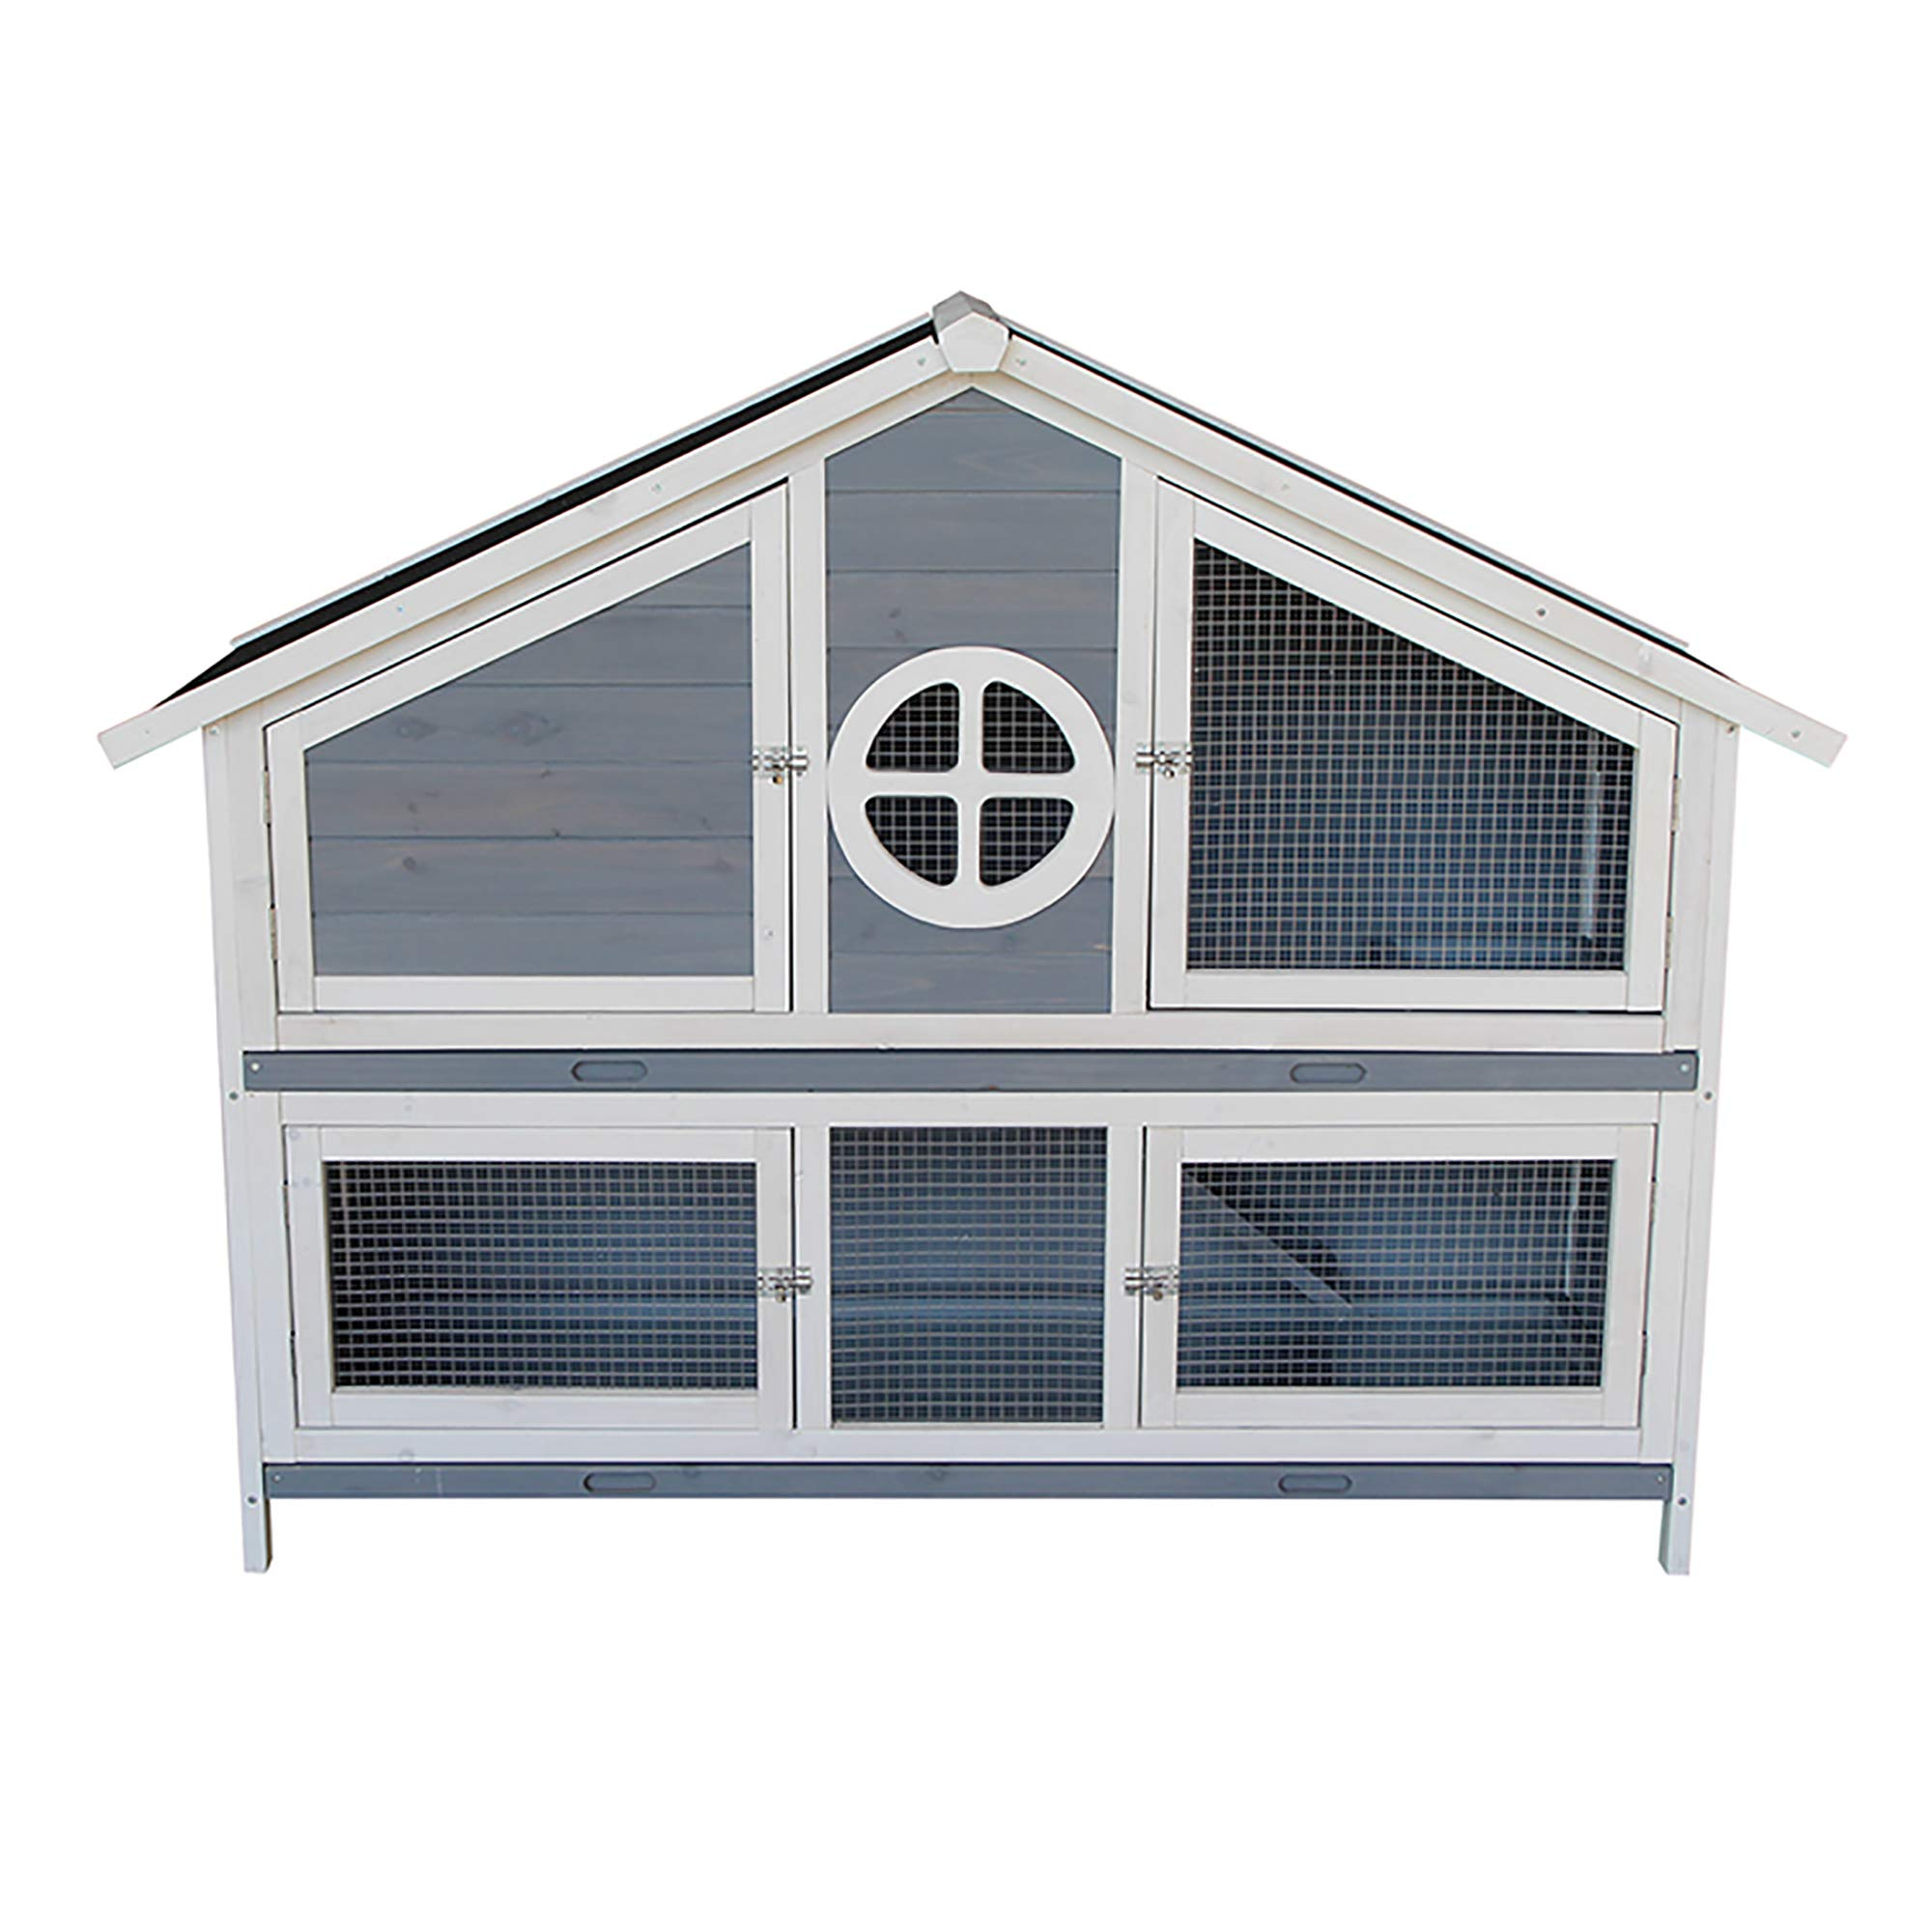 Rhomtree Large Wooden Rabbit Hutch Chicken Coop Bunny Animal Hen Cage House Great for Rabbits, Chickens, Ducks, and Other Poultry (Grey) by Rhomtree (Image #2)